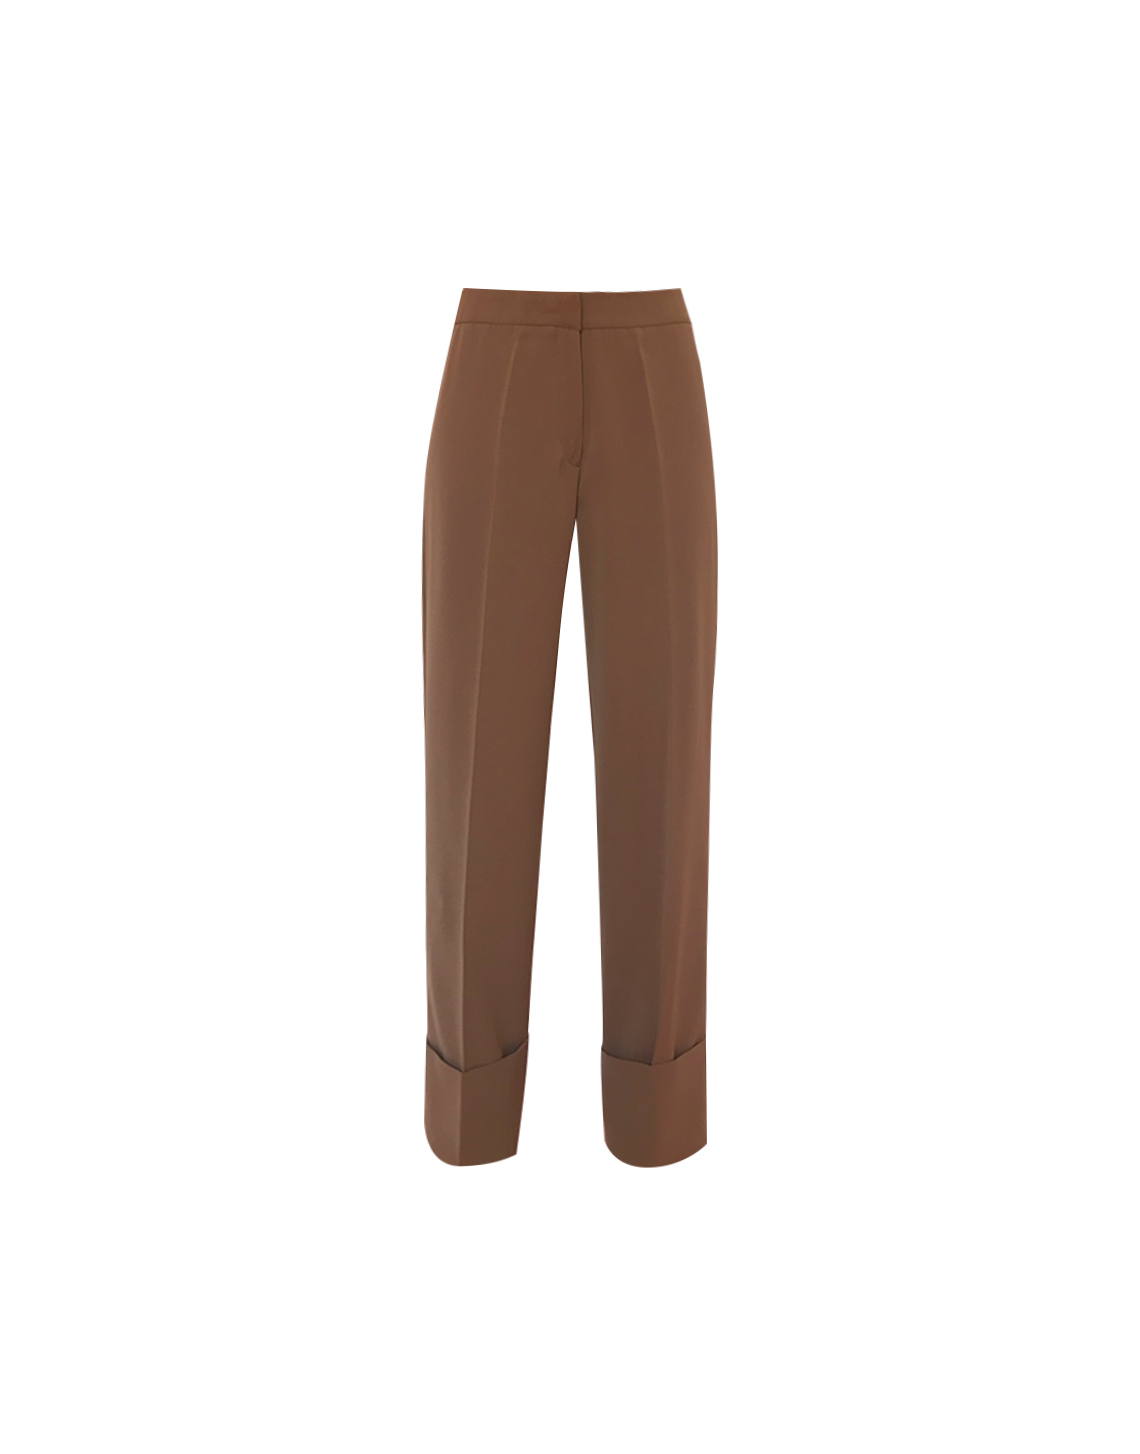 Holly Pants - Camel by Jessica K on curated-crowd.com